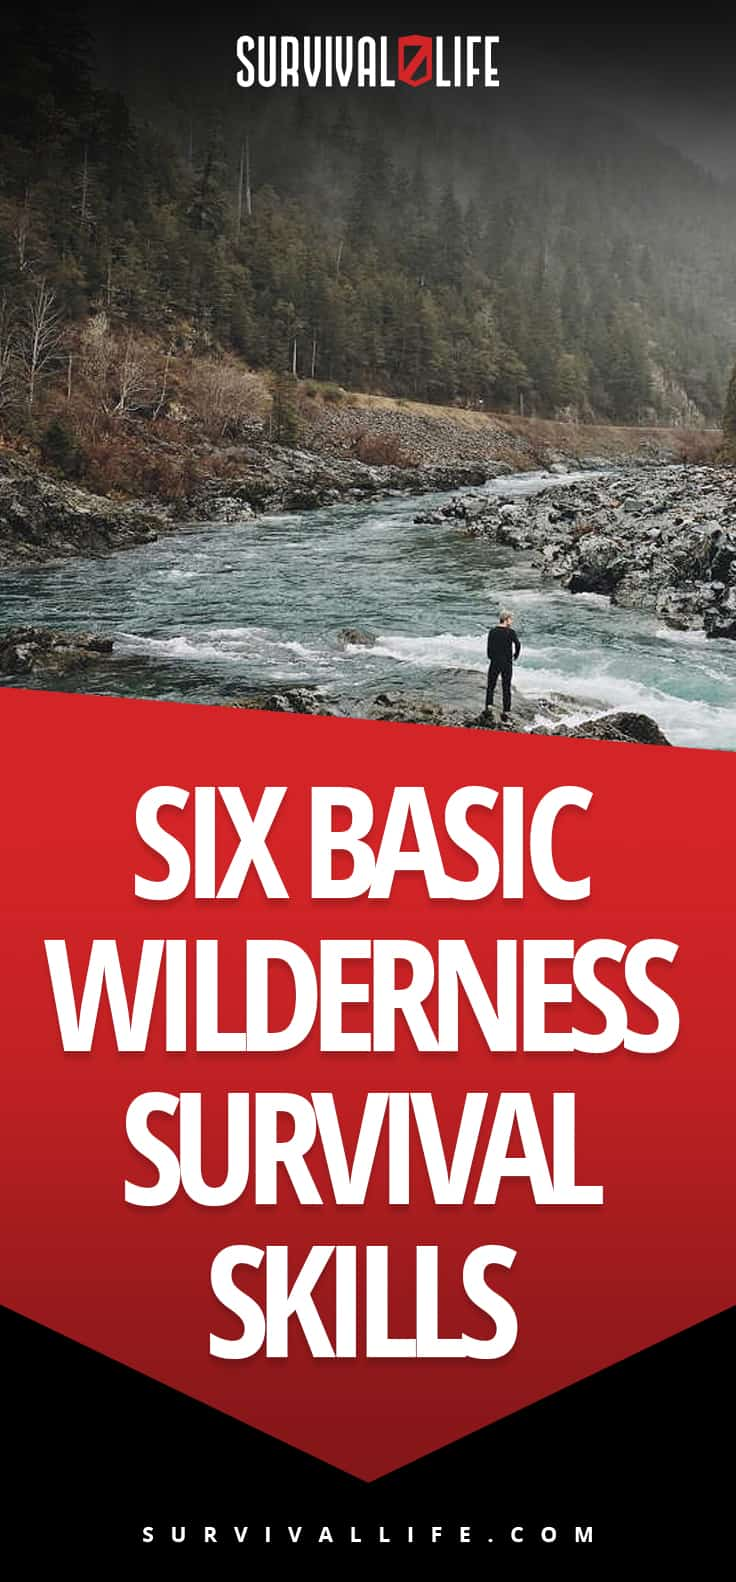 Six Basic Wilderness Survival Skills